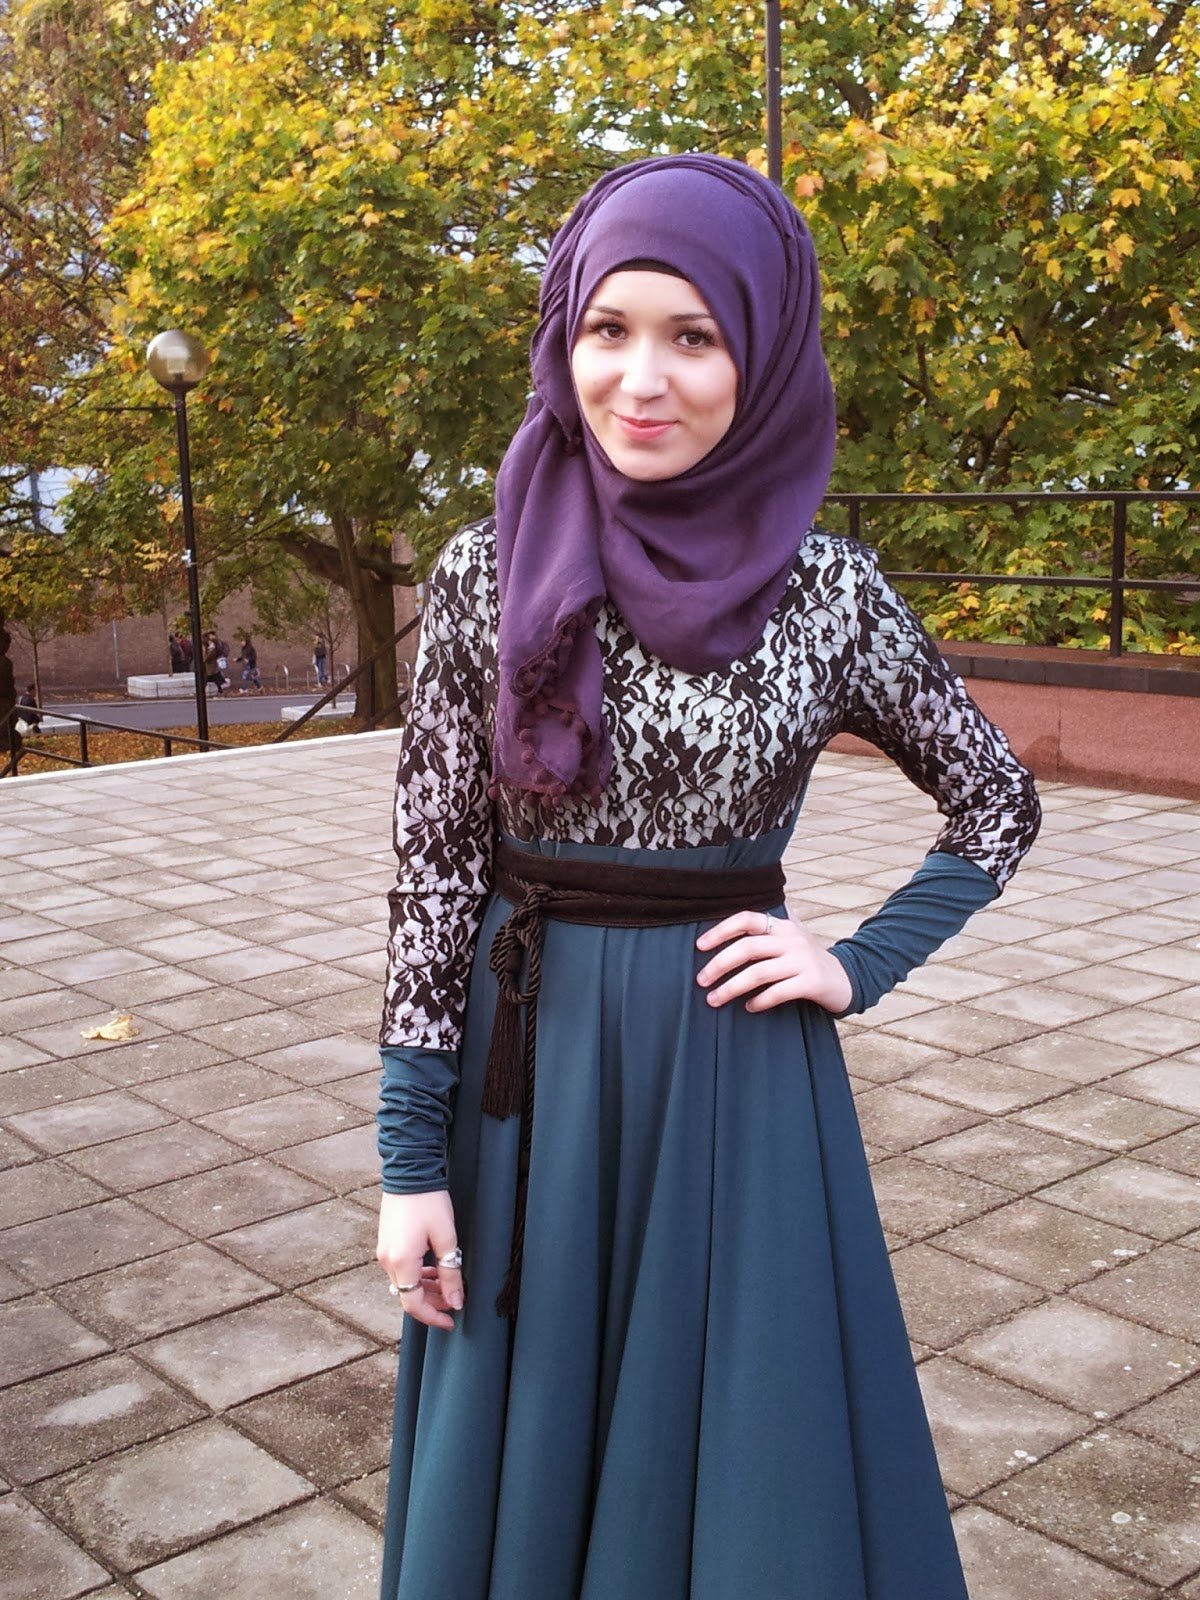 1000 Images About Everyday Fashion On Pinterest Hijabs Hijab Styles And Hijab Fashion